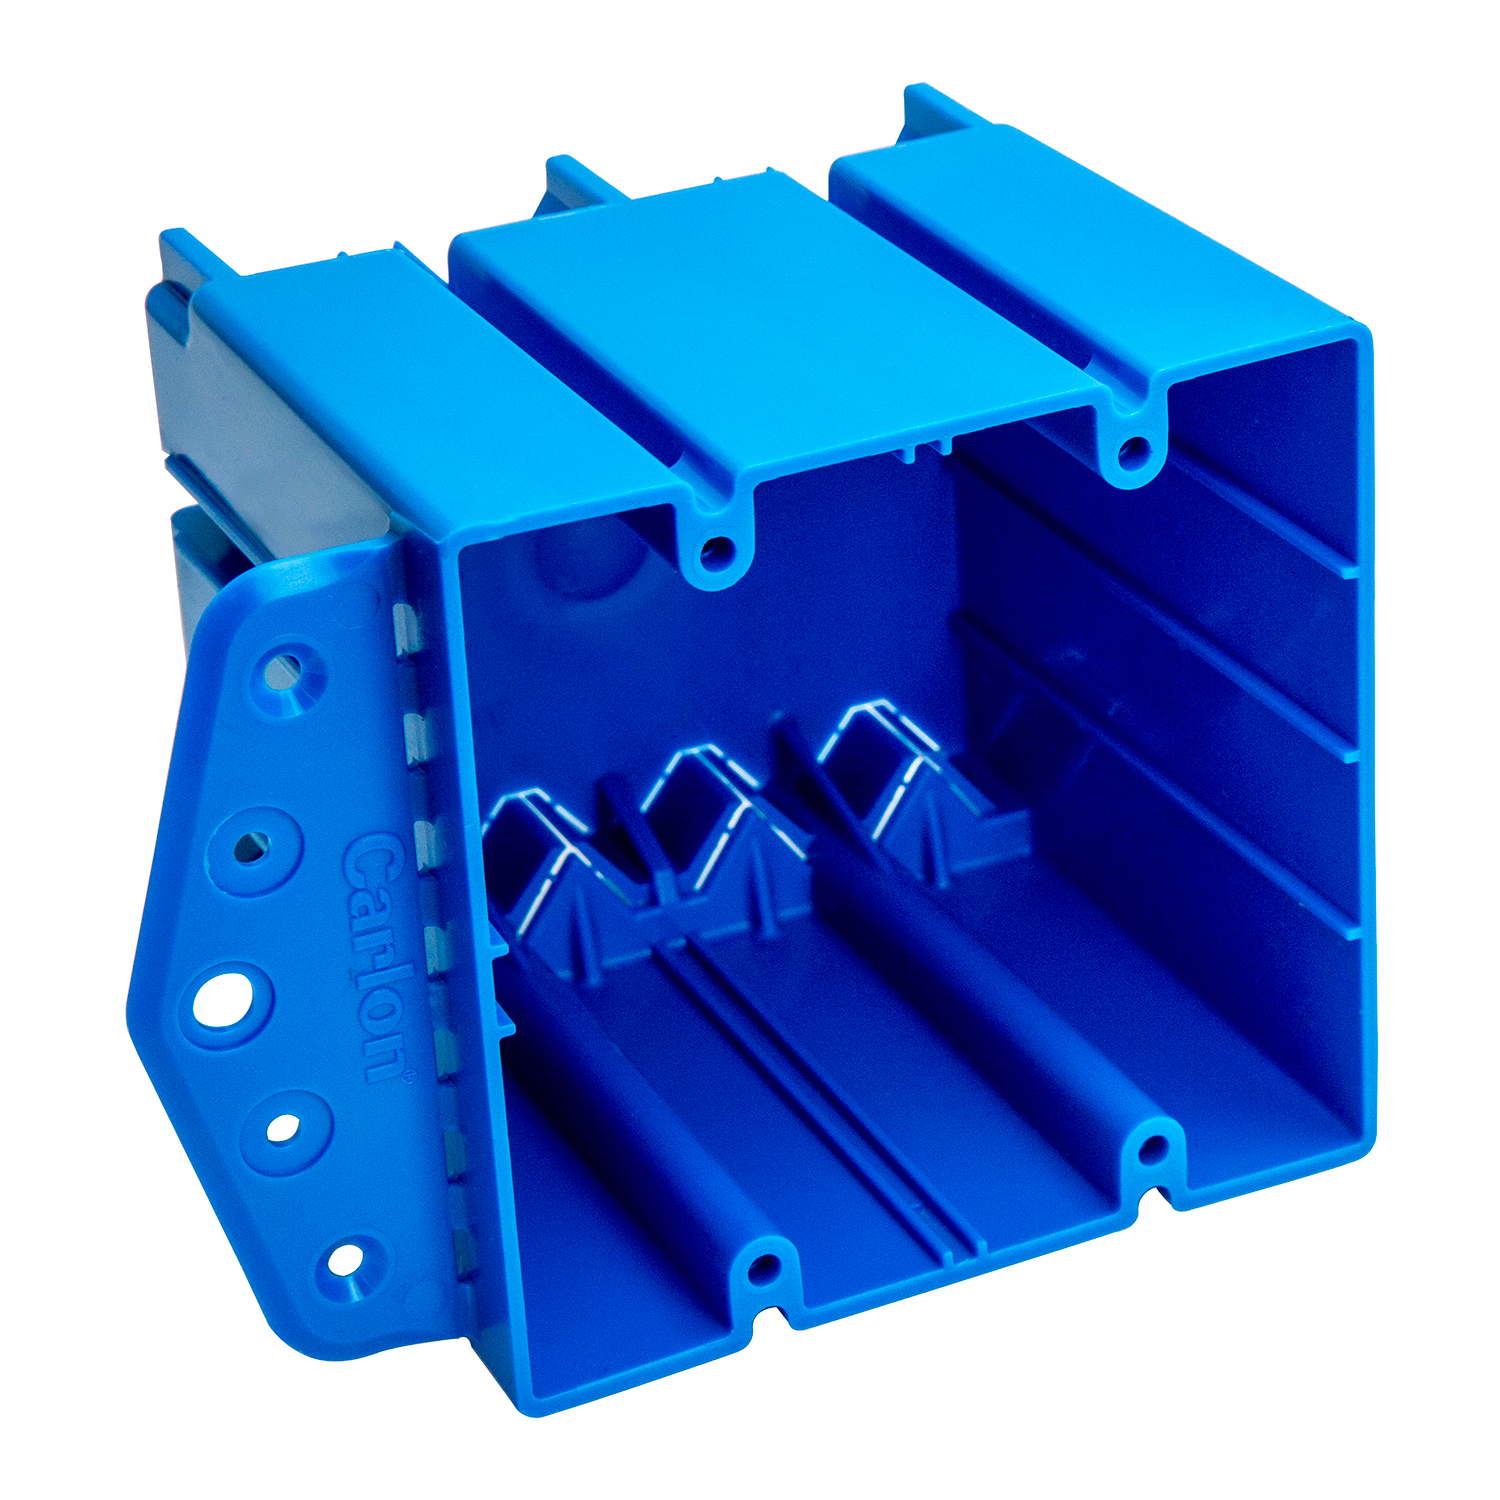 Boxes Enclosures Fittings Non Metallic Accessories 3 Gang Light Switch Box 2g Blue Multipurpose Electrical Outlet Wood Or Steel Studs Captive